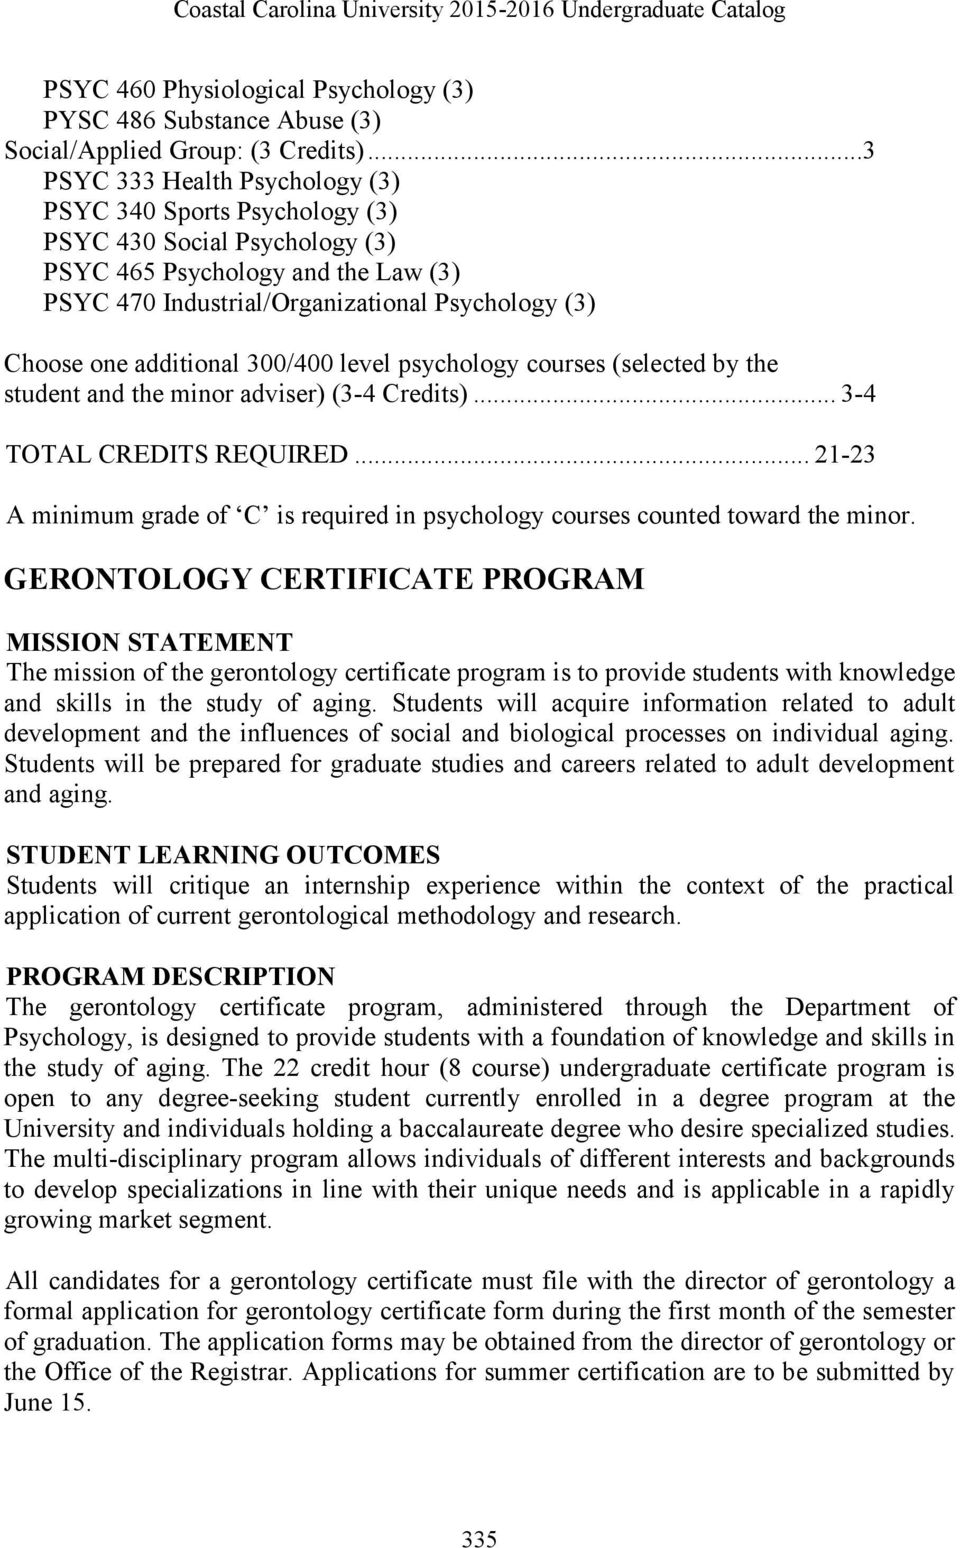 additional 300/400 level psychology courses (selected by the student and the minor adviser) (3-4 Credits)... 3-4 TOTAL CREDITS REQUIRED.